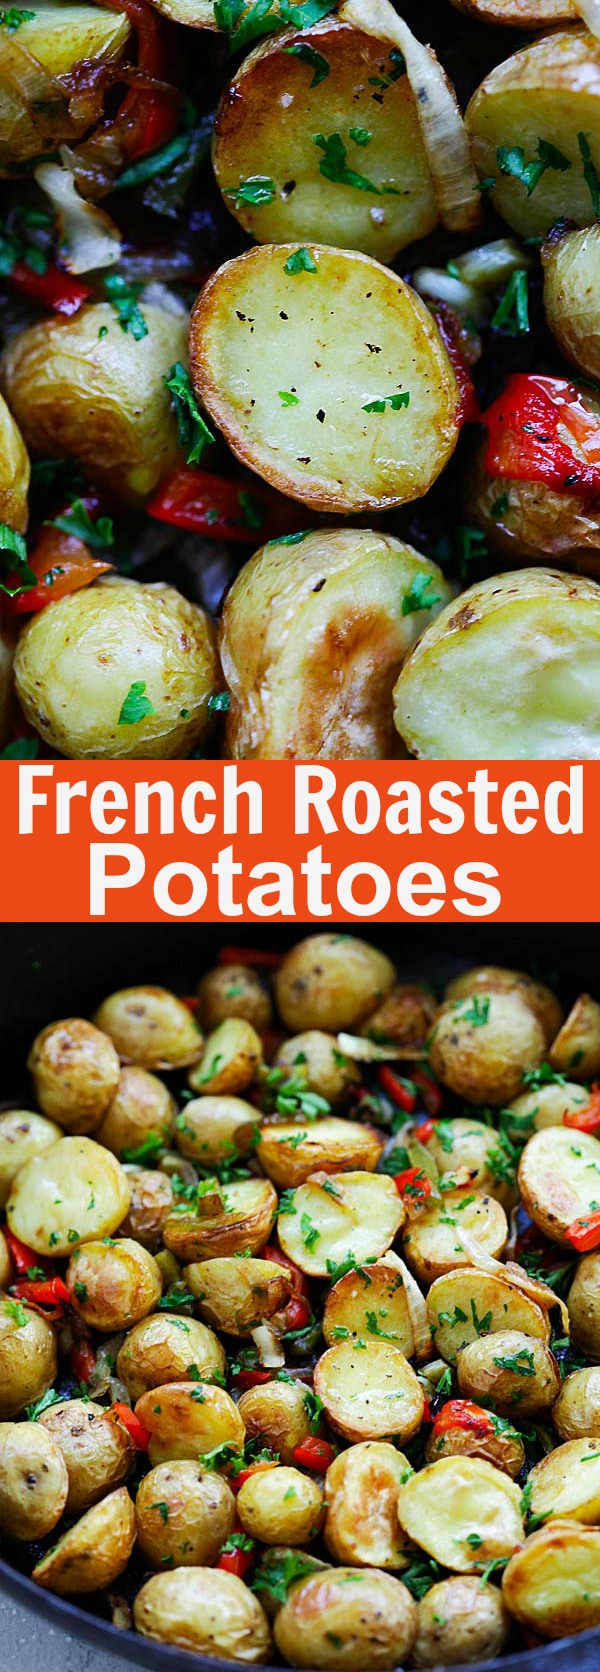 French Roasted Potatoes - easy recipe with baby potatoes, onion and bell peppers. This French-style roasted potatoes is delicious and a perfect side dish | rasamalaysia.com